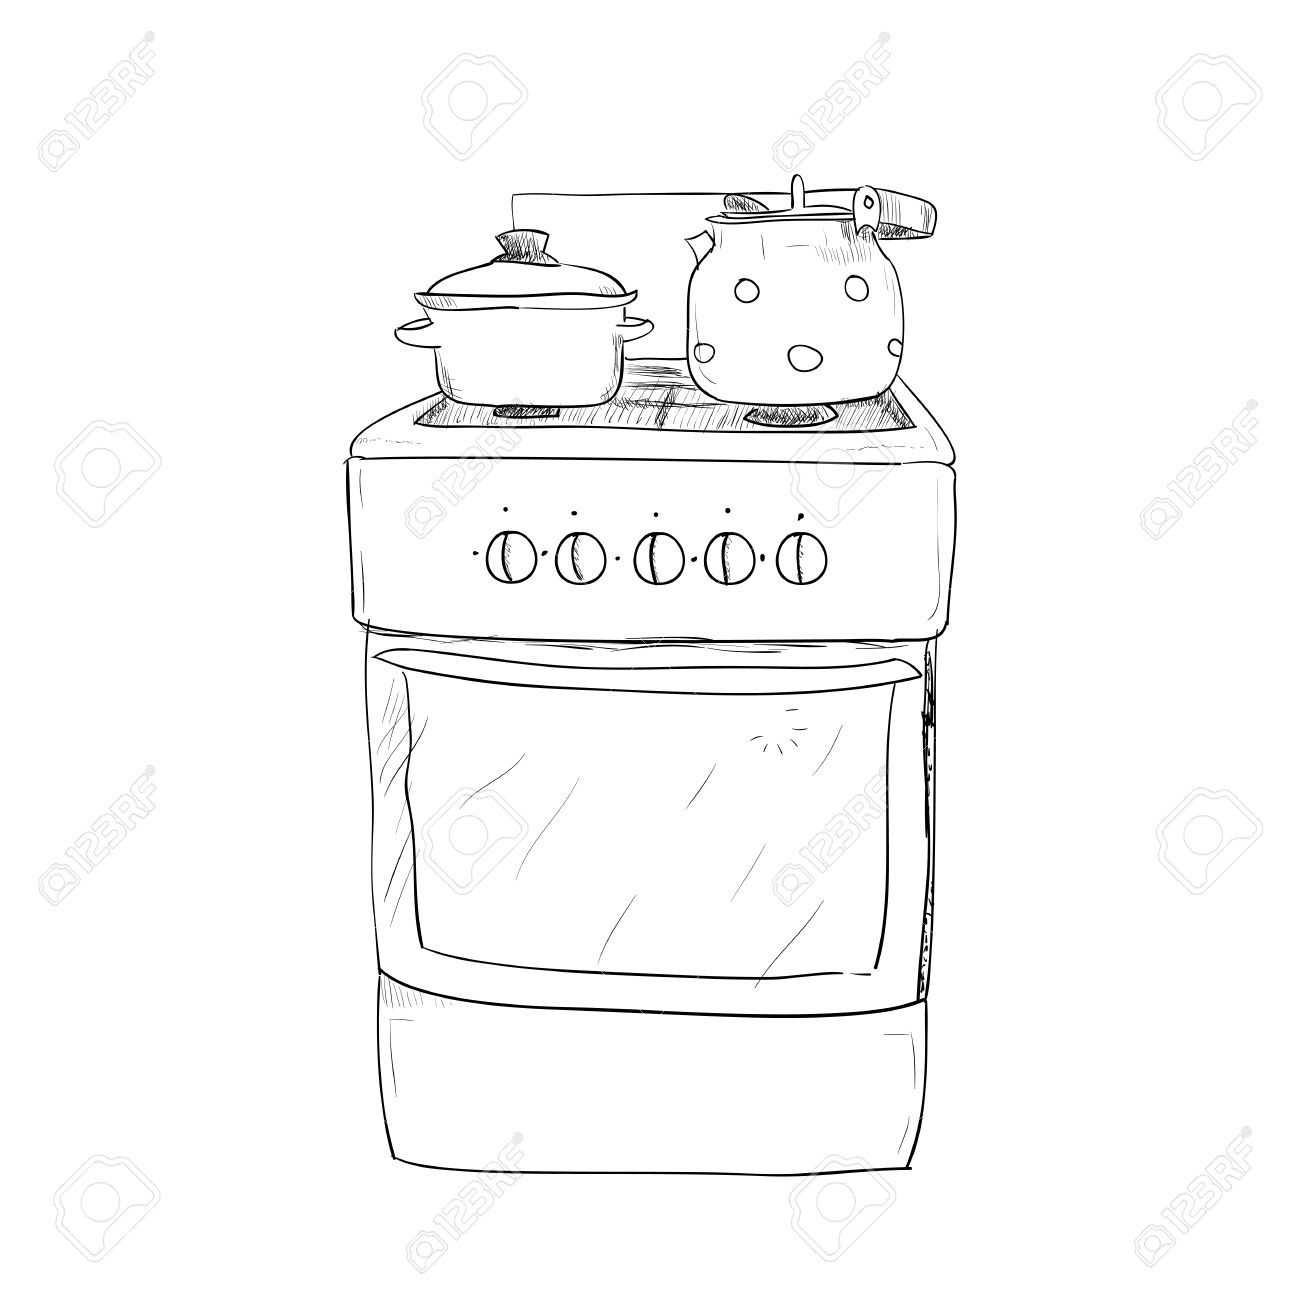 Hand Drawn Sketch Of Kitchen Stove With Kettle And Pan Stock Vector